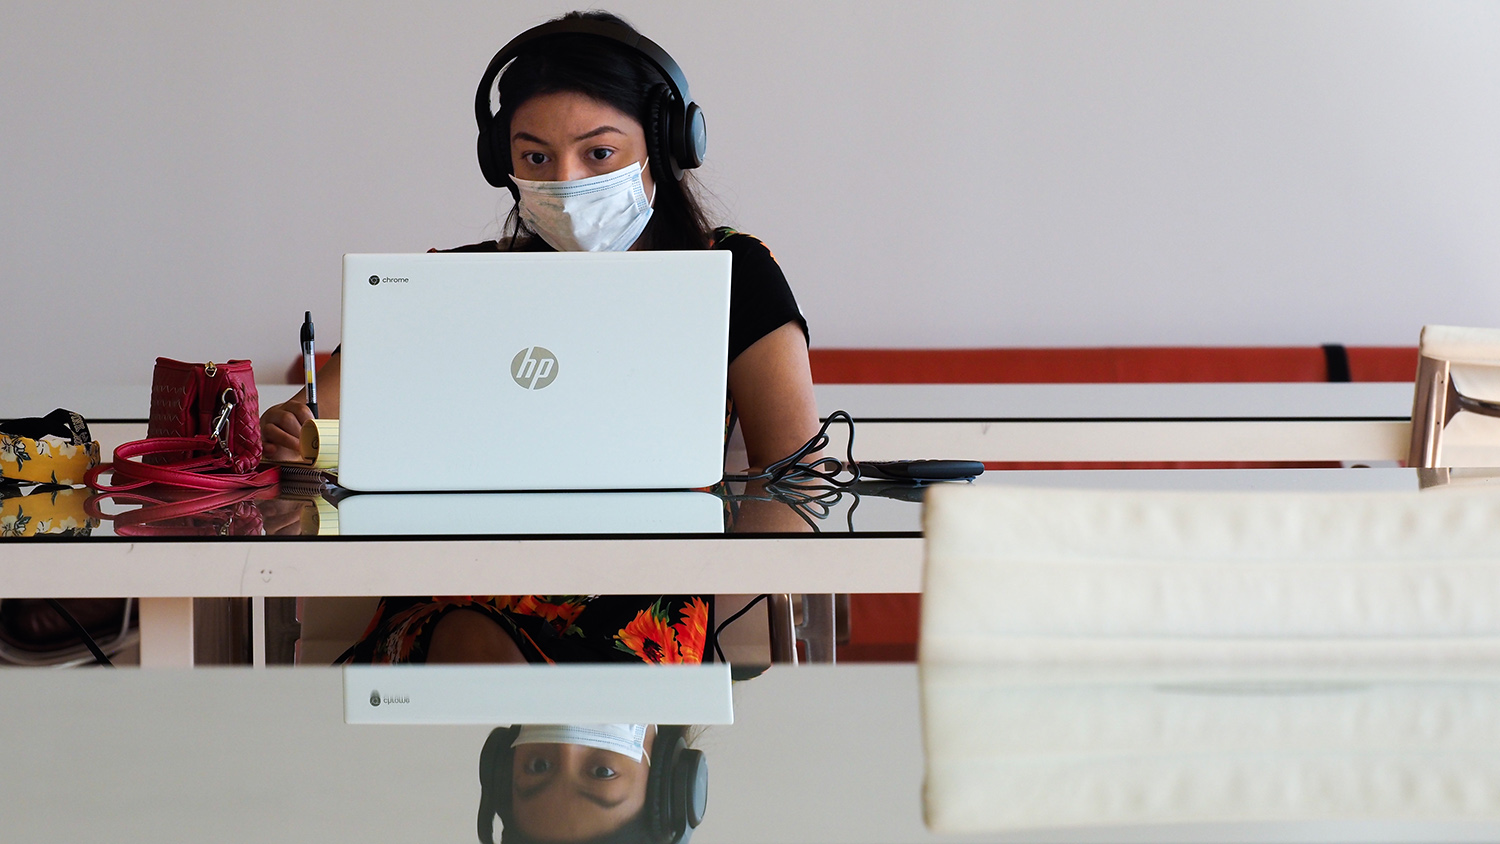 Woman with mask on working on laptop